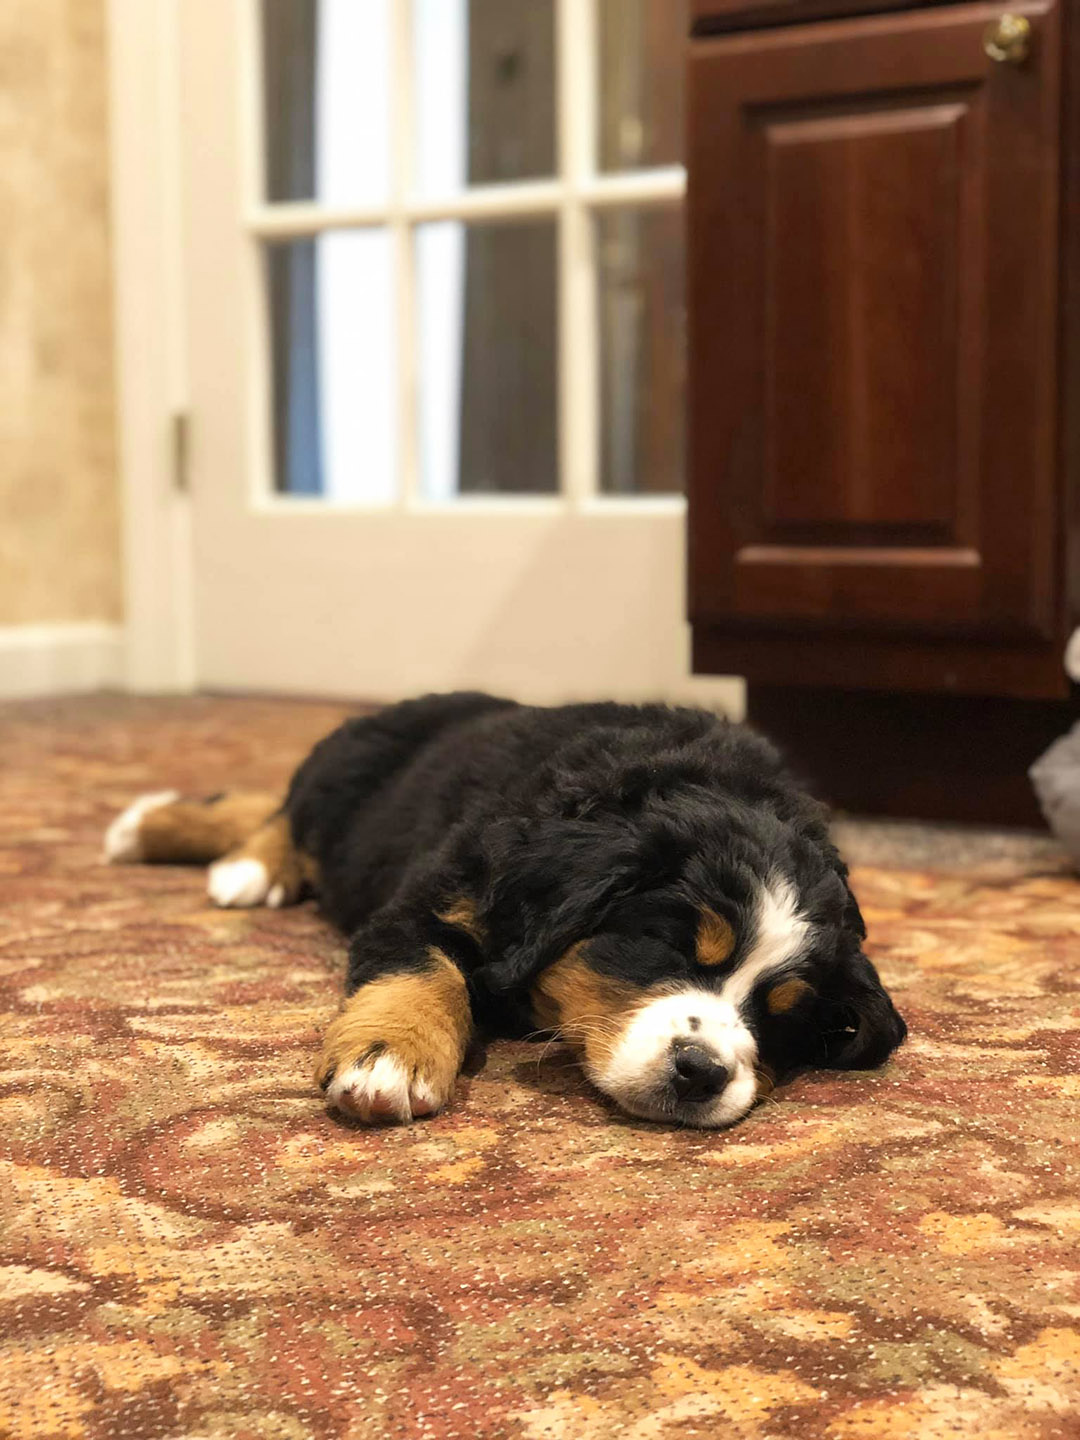 Mochi the puppy, a Bernese mountain dog, is asleep on the carpet at the Macon Funeral Home